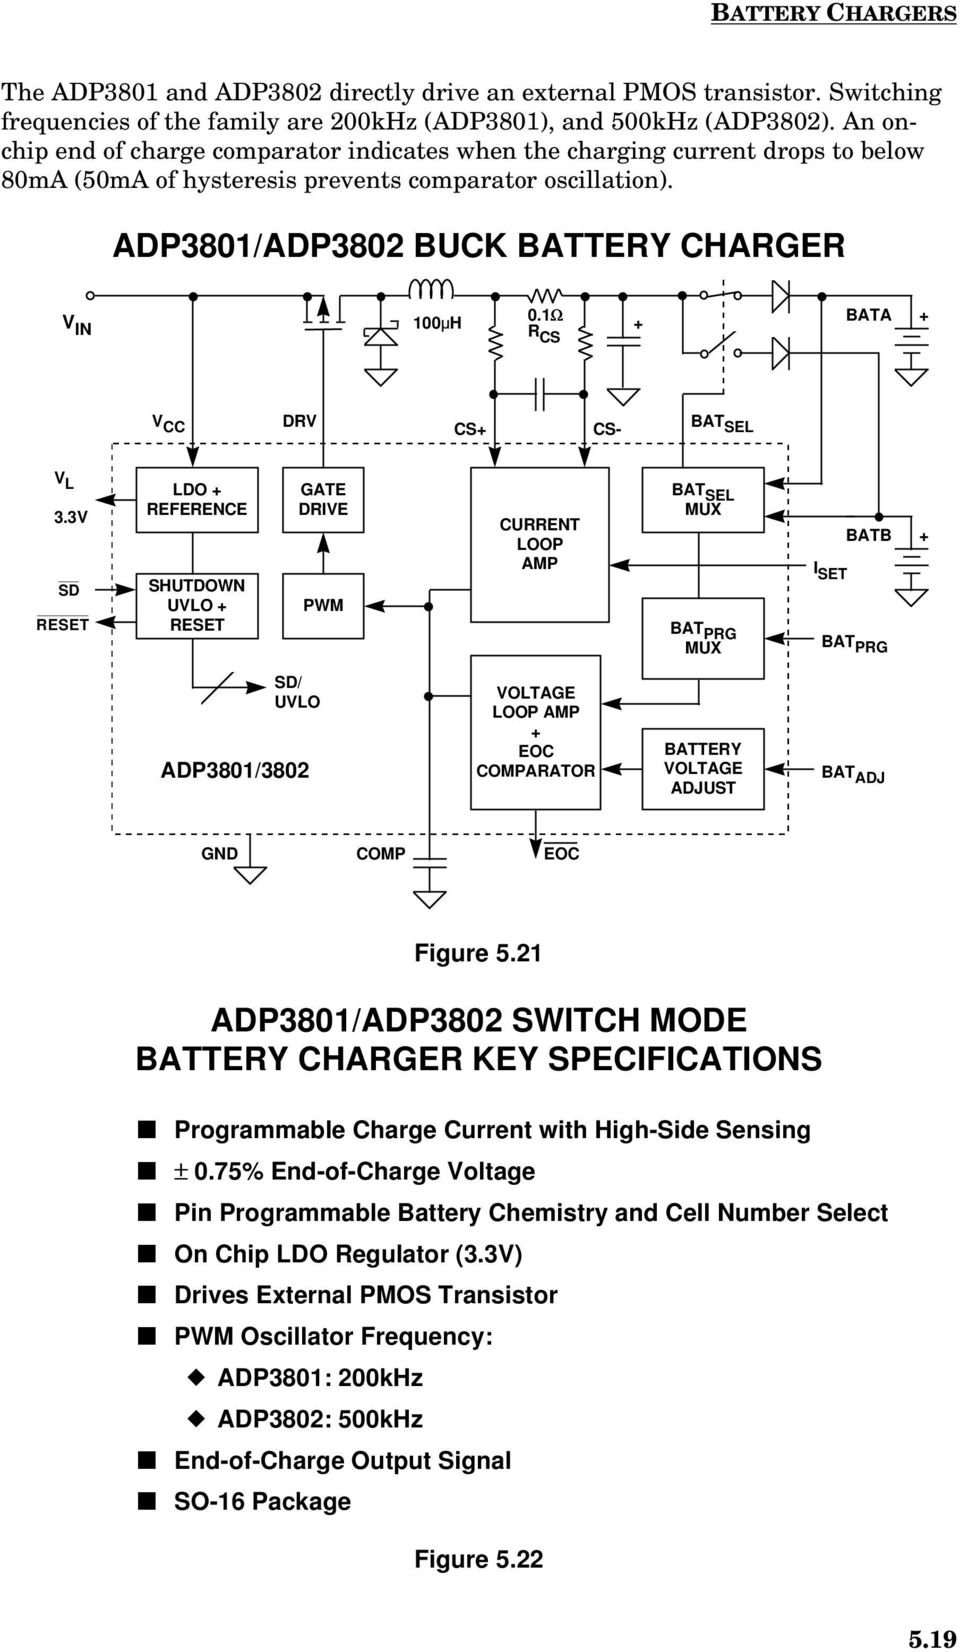 Rechargeable Battery Considerations In Portable Equipment Pdf Batterychargercontroller Controlcircuit Circuit Diagram 1 Bata R Cs V Cc Drv Bat Sel L